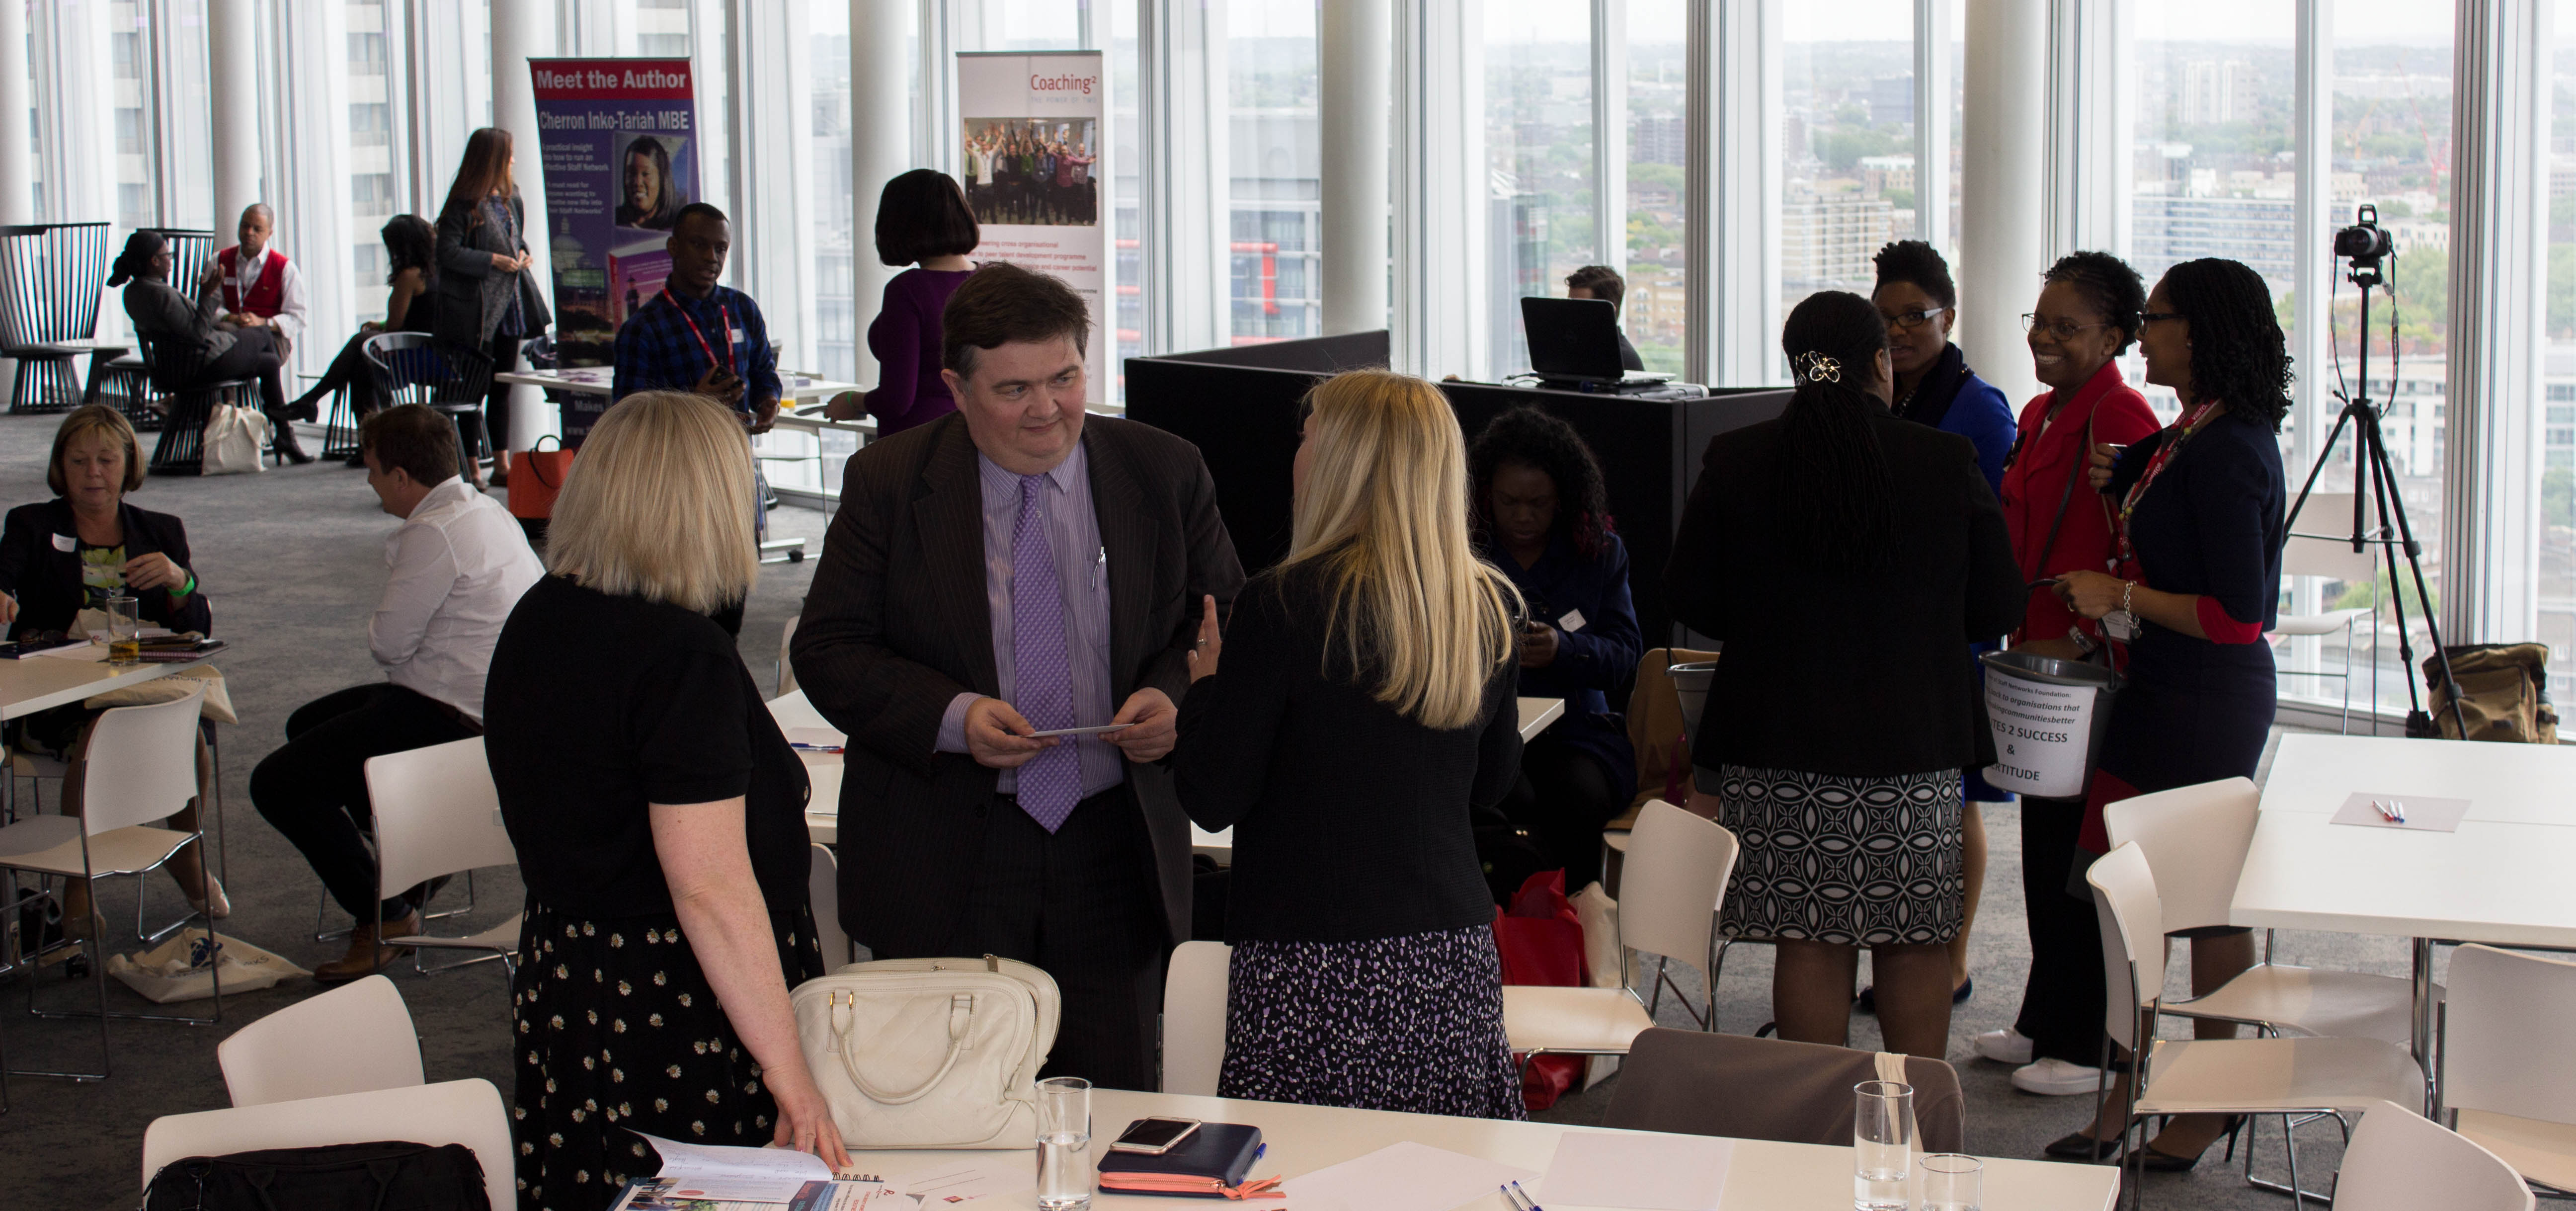 Networking at the event, groups of people of all races, abilities and genders